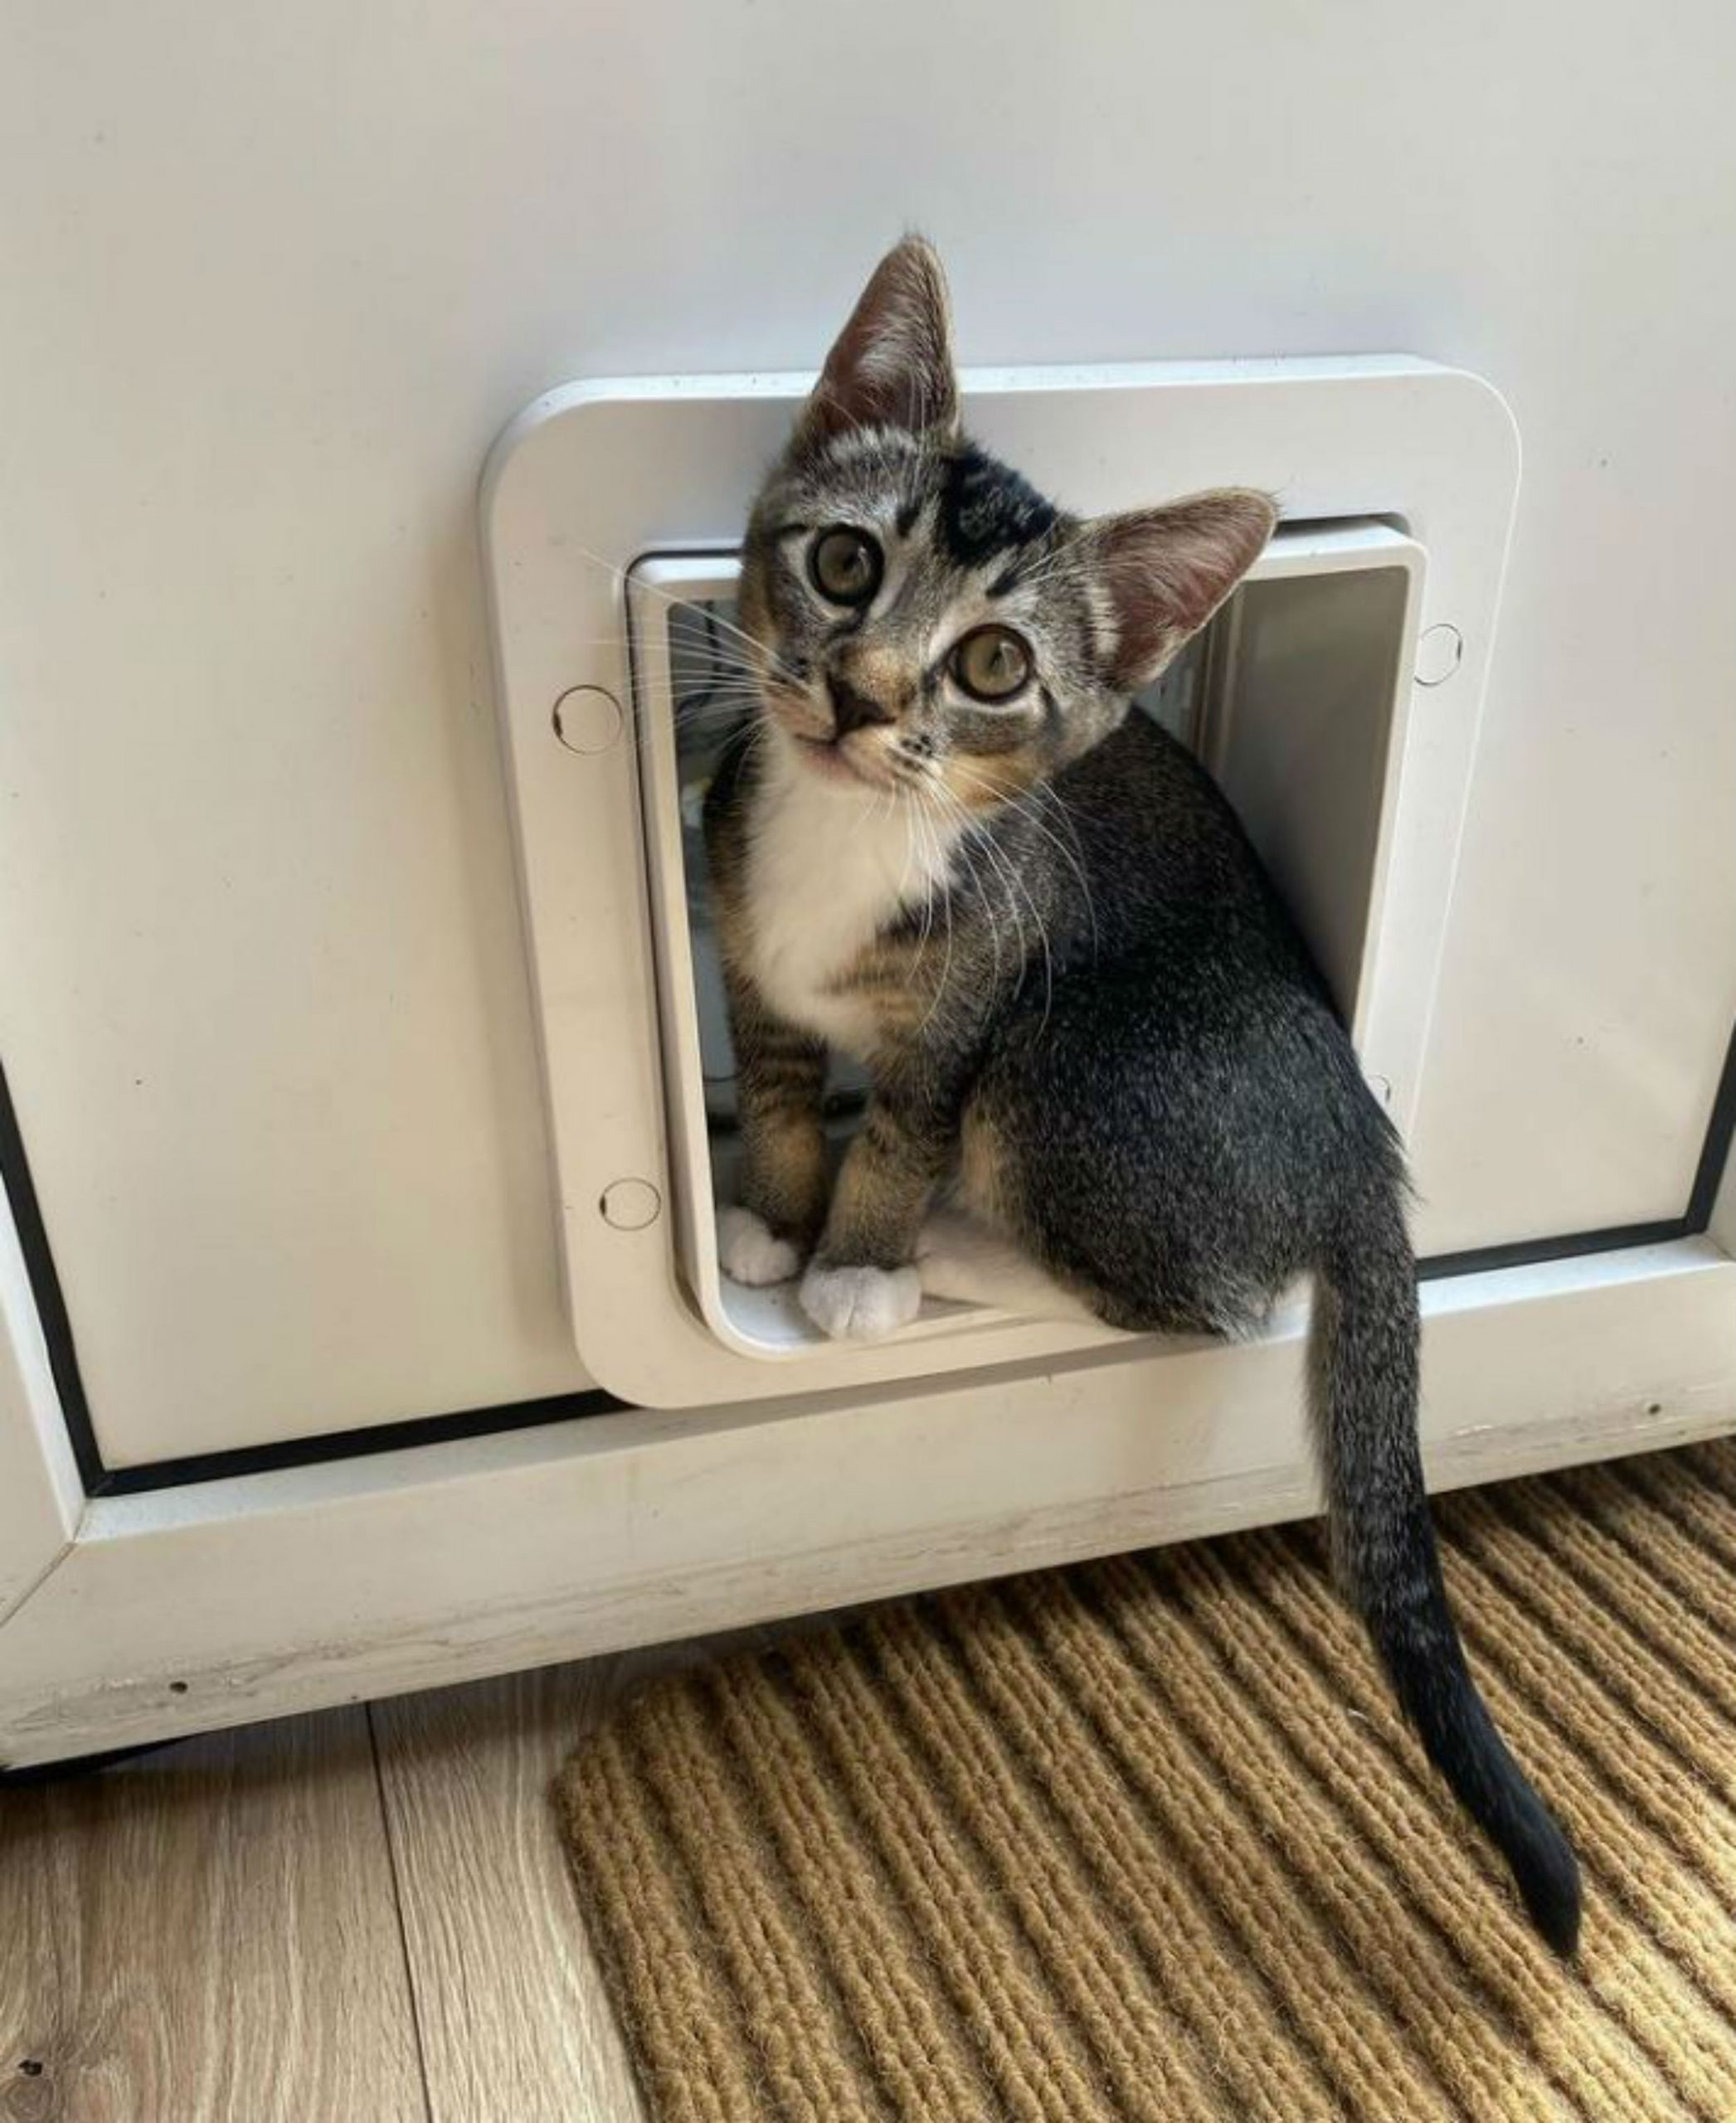 A SNEAKY kitten has gone viral after being filmed creeping back home with a stolen bag of treats in its mouth - Viral Video News